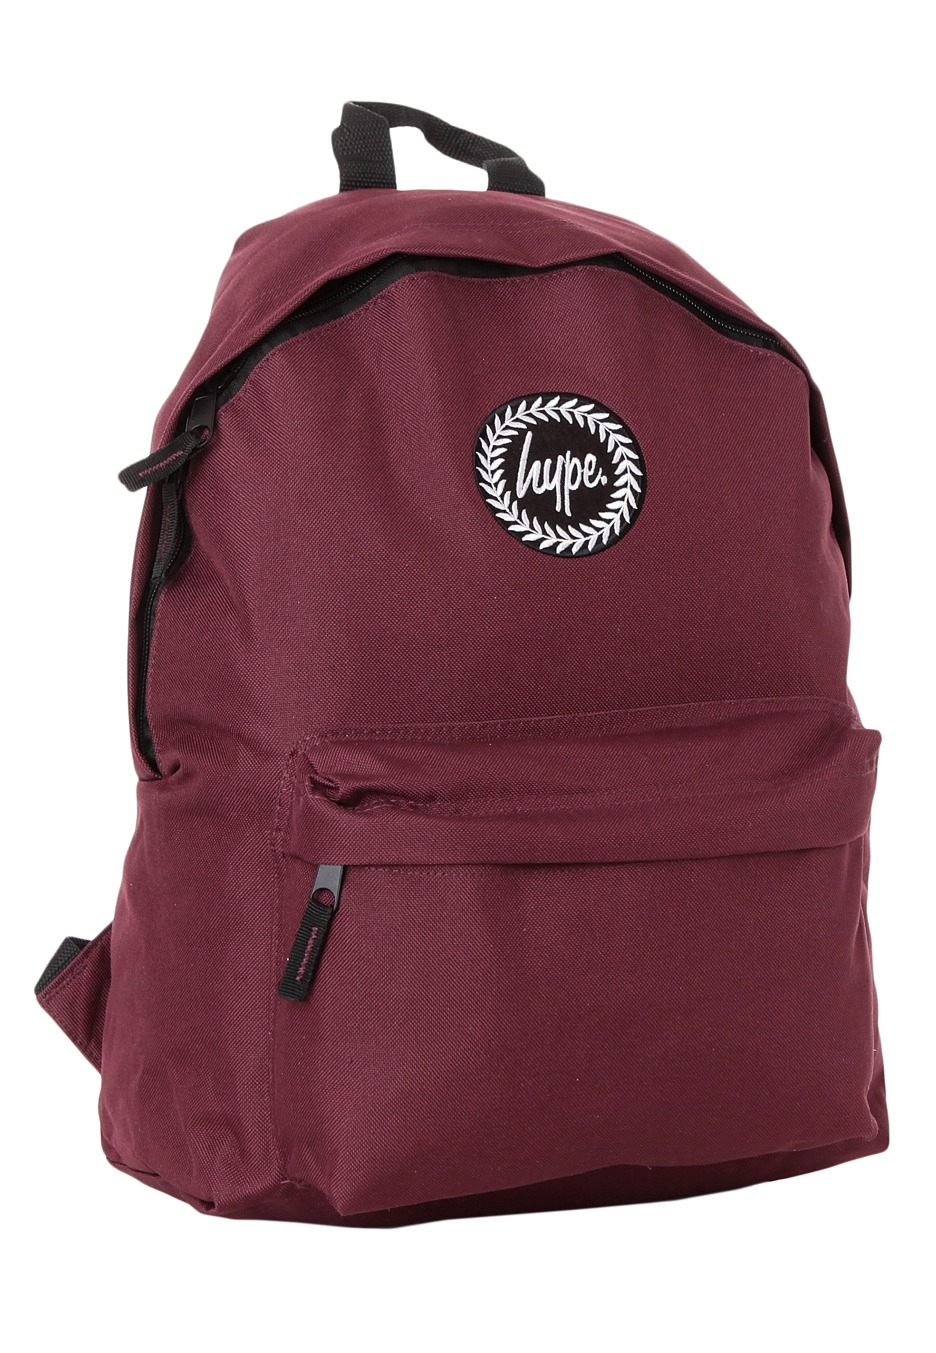 Find great deals on eBay for burgundy backpack. Shop with confidence.